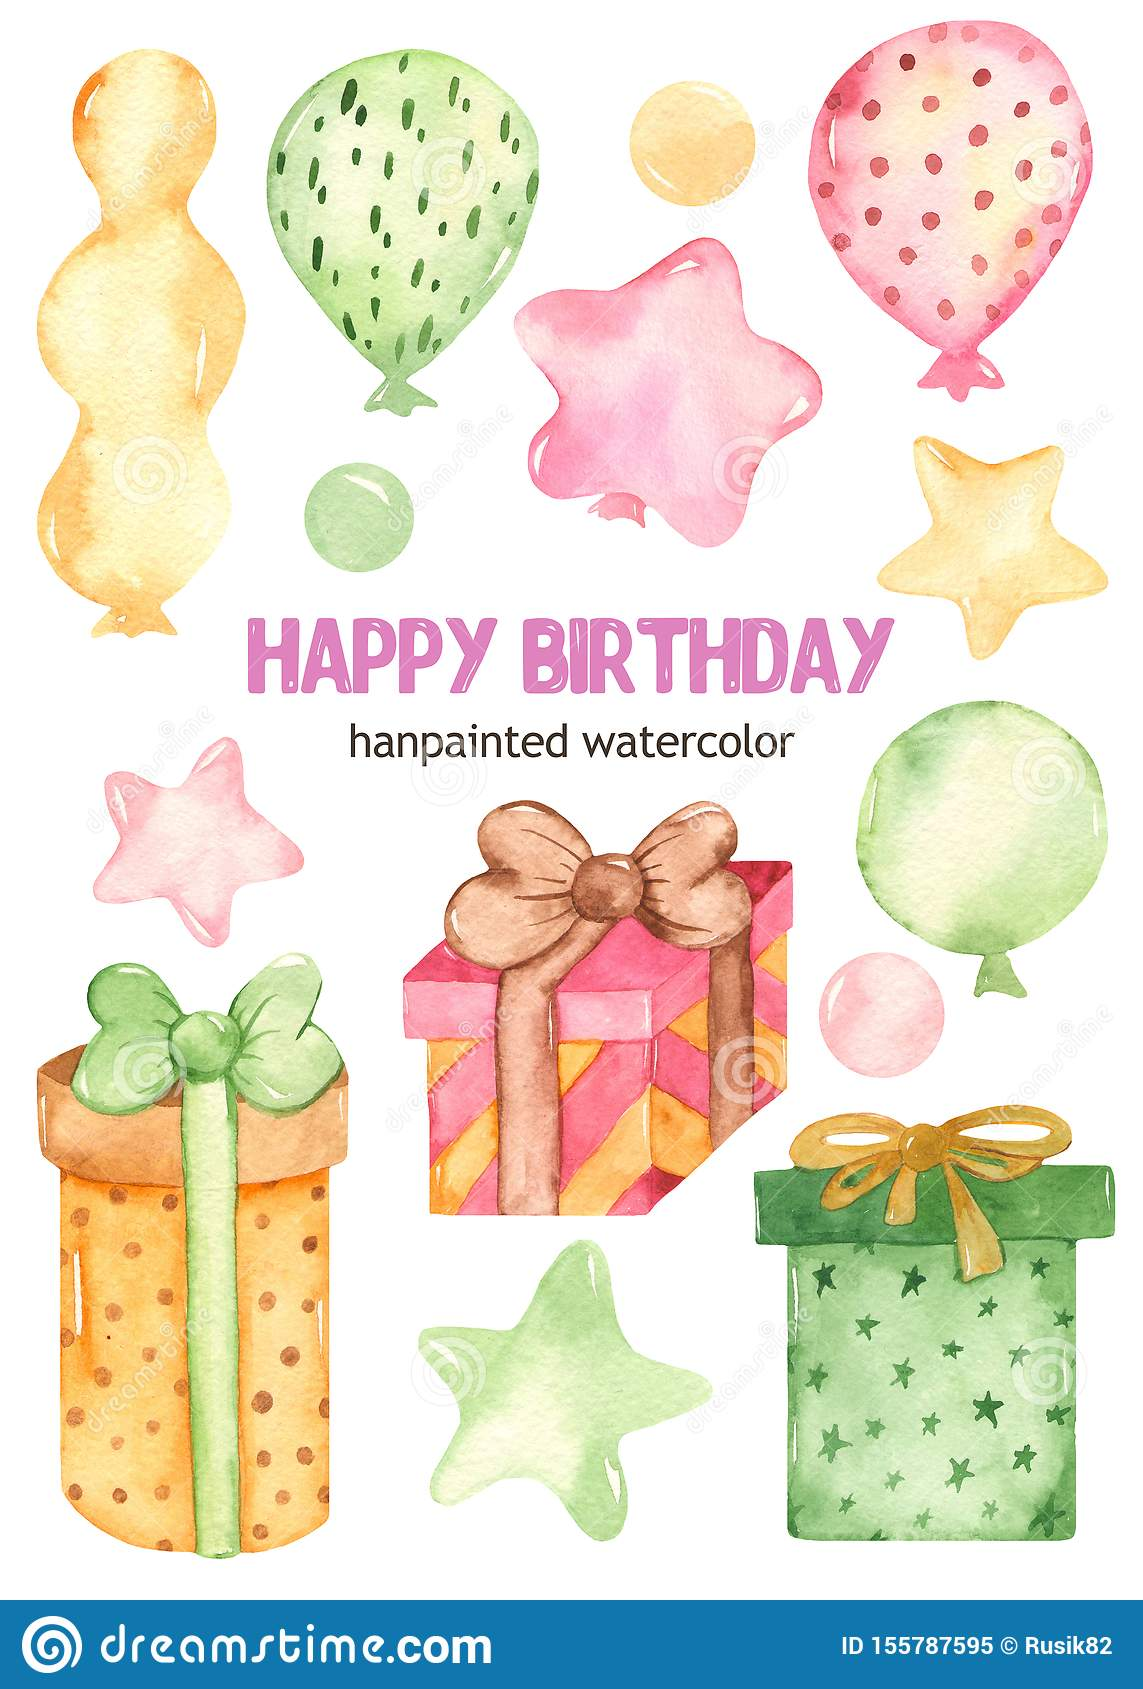 Birthday Cake Clipart Photos Free Royalty Free Stock Photos From Dreamstime